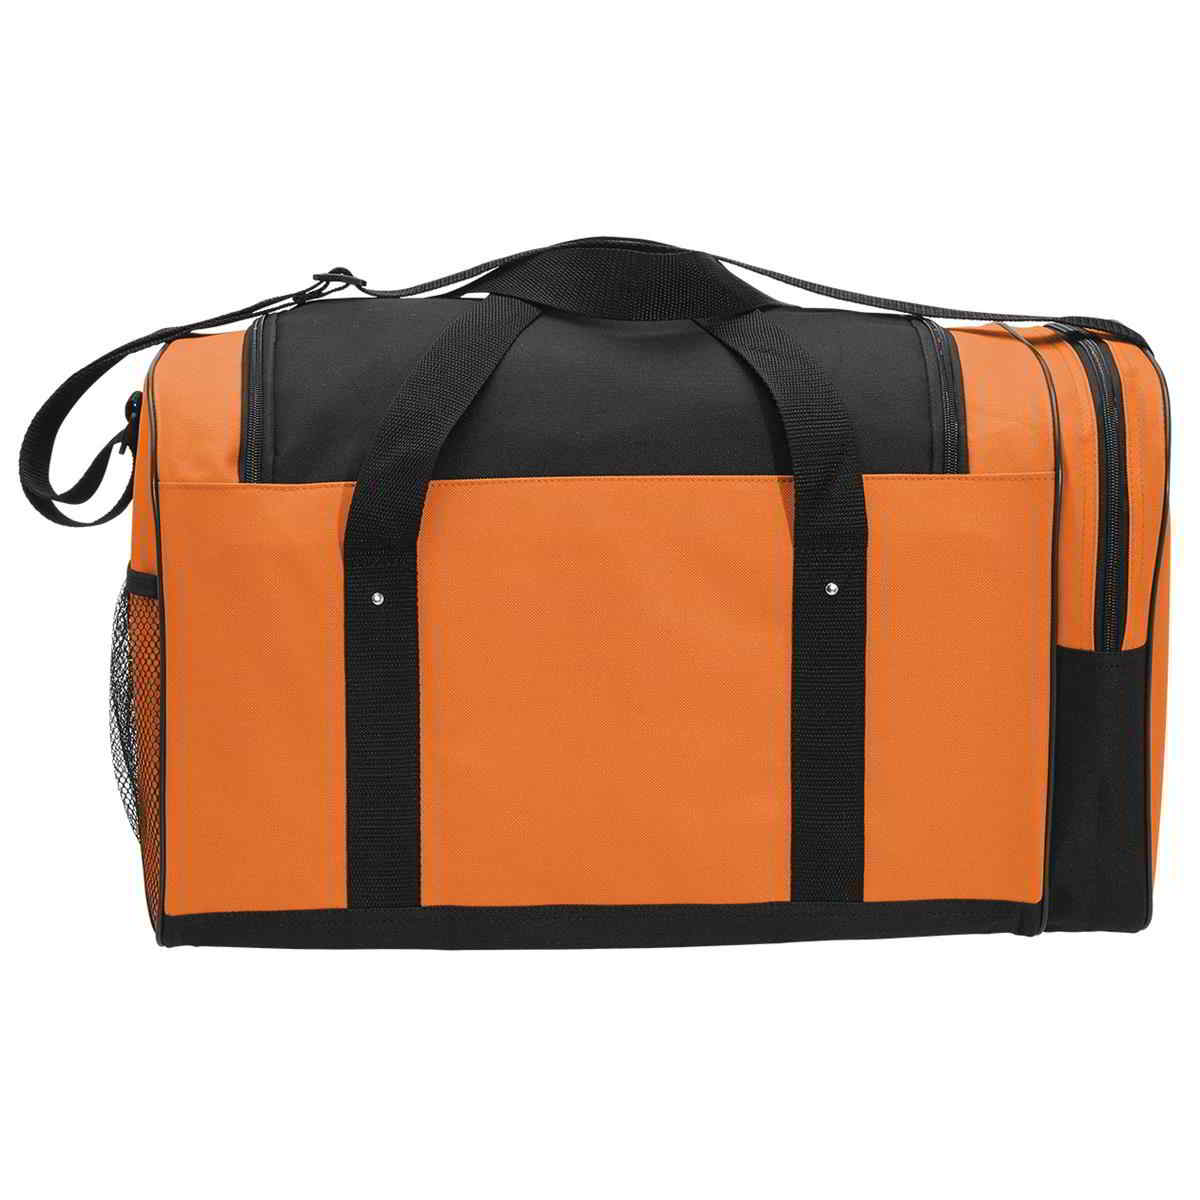 1222 Spark Sports Bag Orange / Black